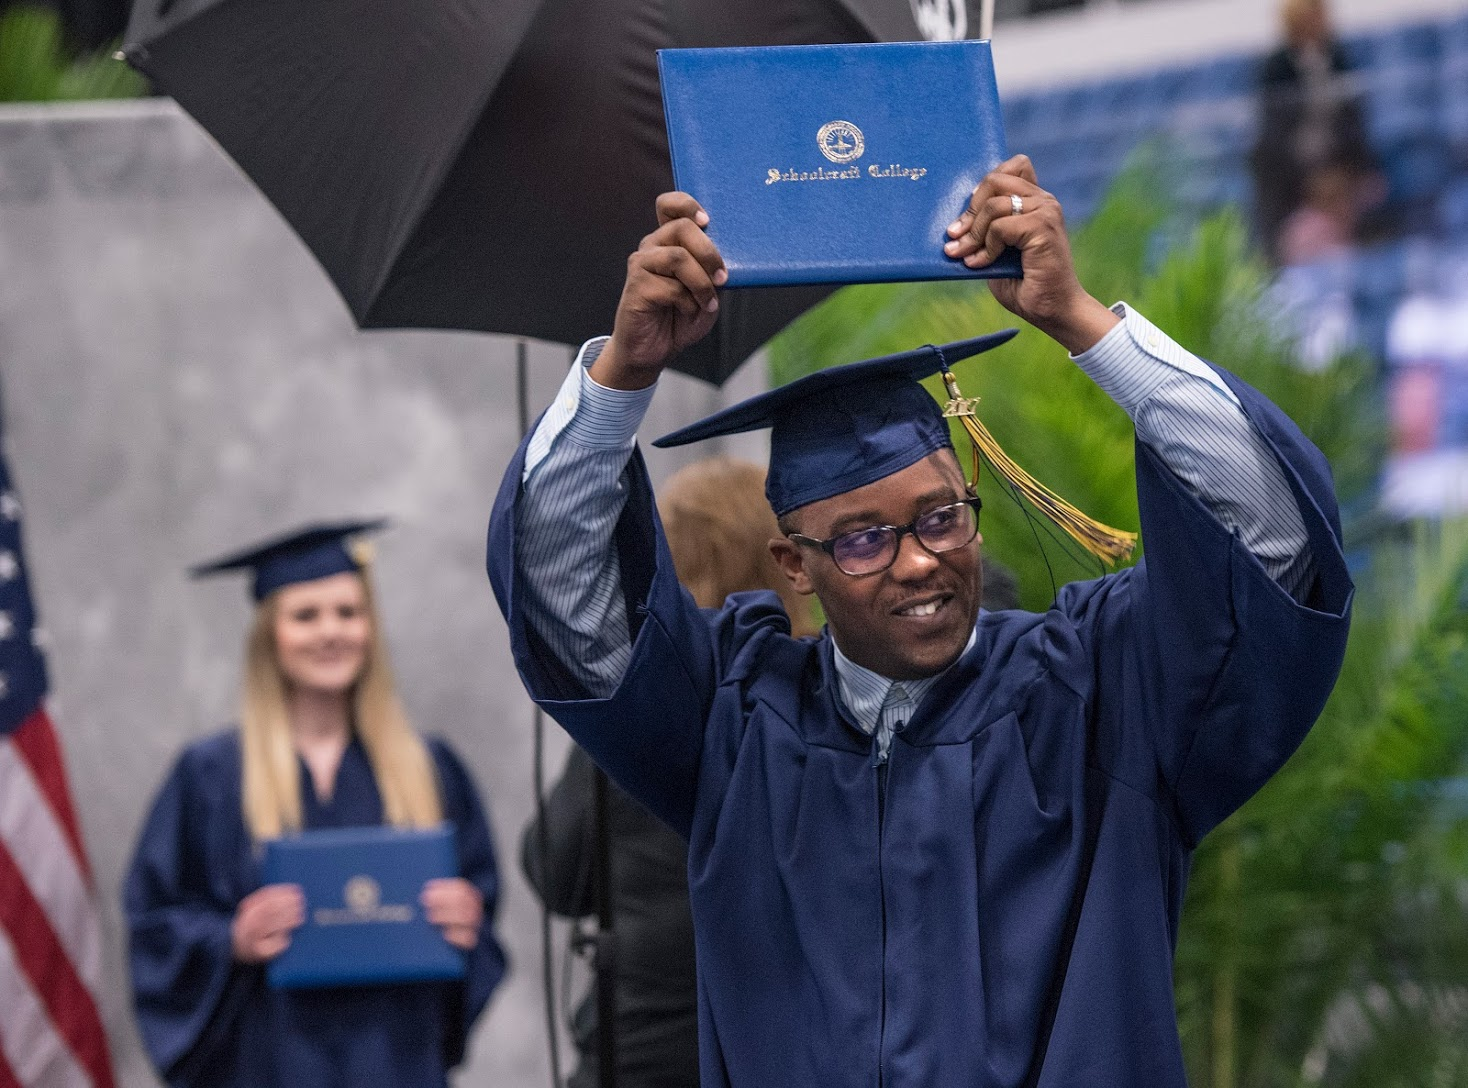 Student proudly holds up his diploma during graduation commencement